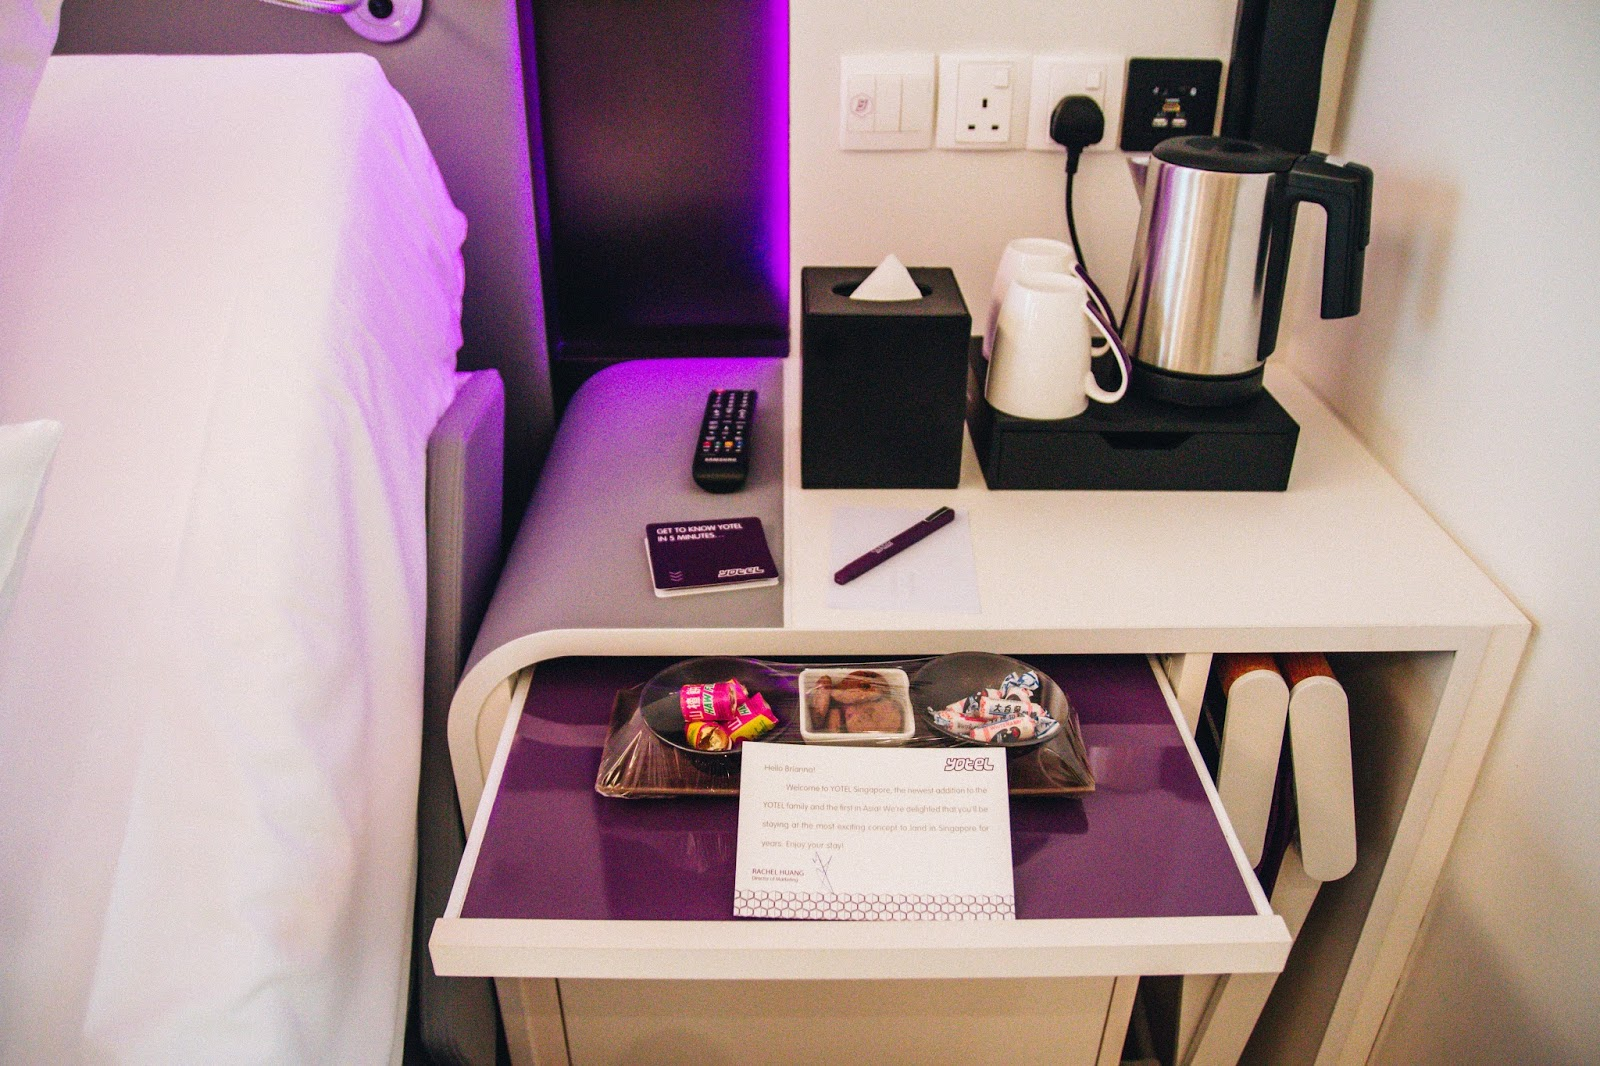 A Glimpse Into The Future: My Unique Stay With Robots At Yotel In Singapore